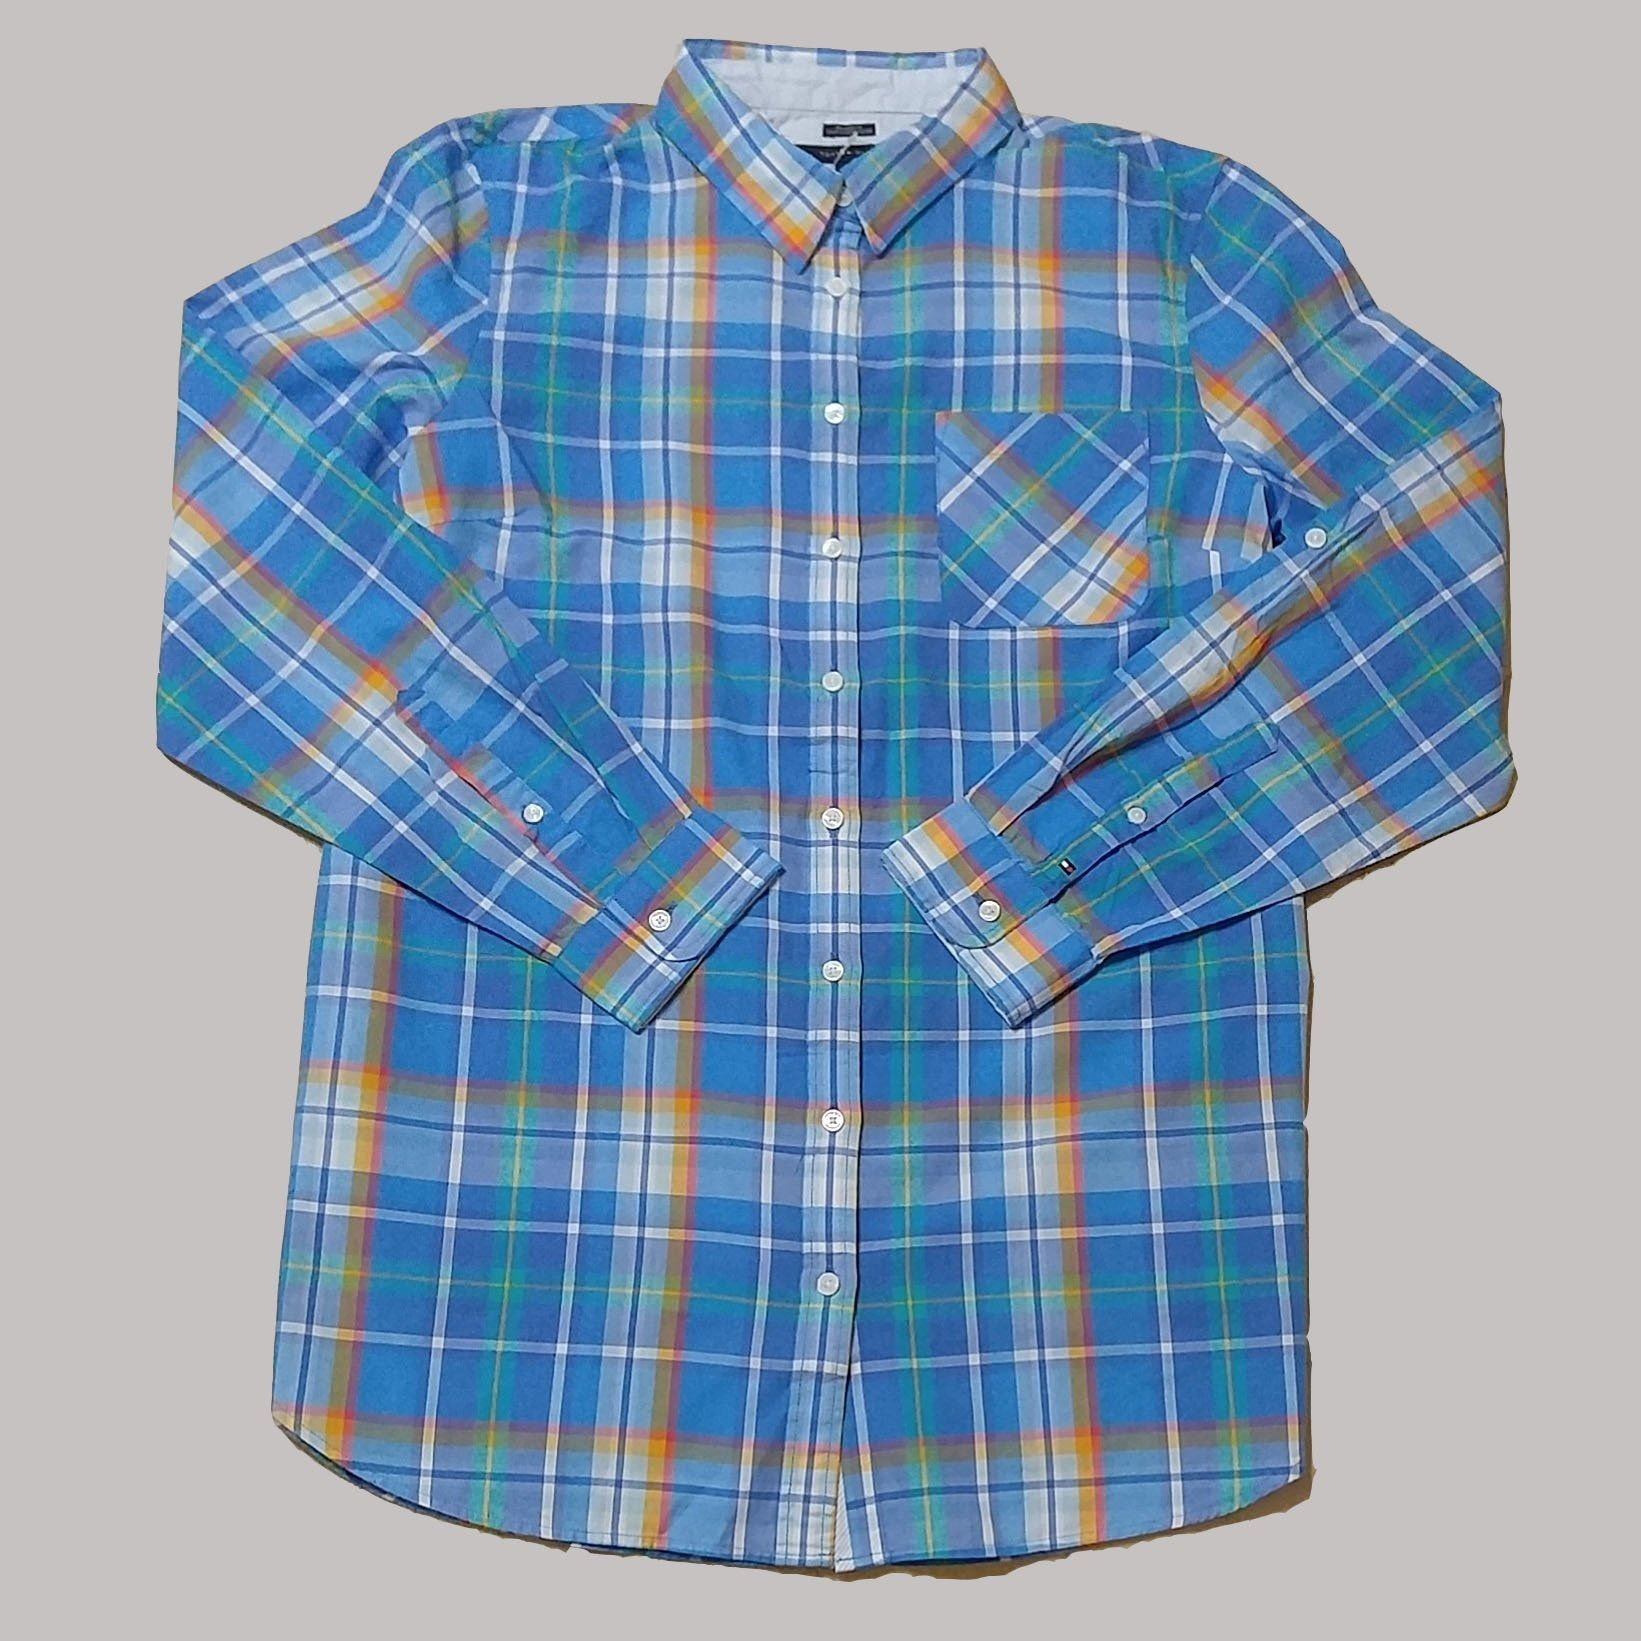 45600cfbaf58e Womens Blue And White Plaid Shirts - Cotswold Hire